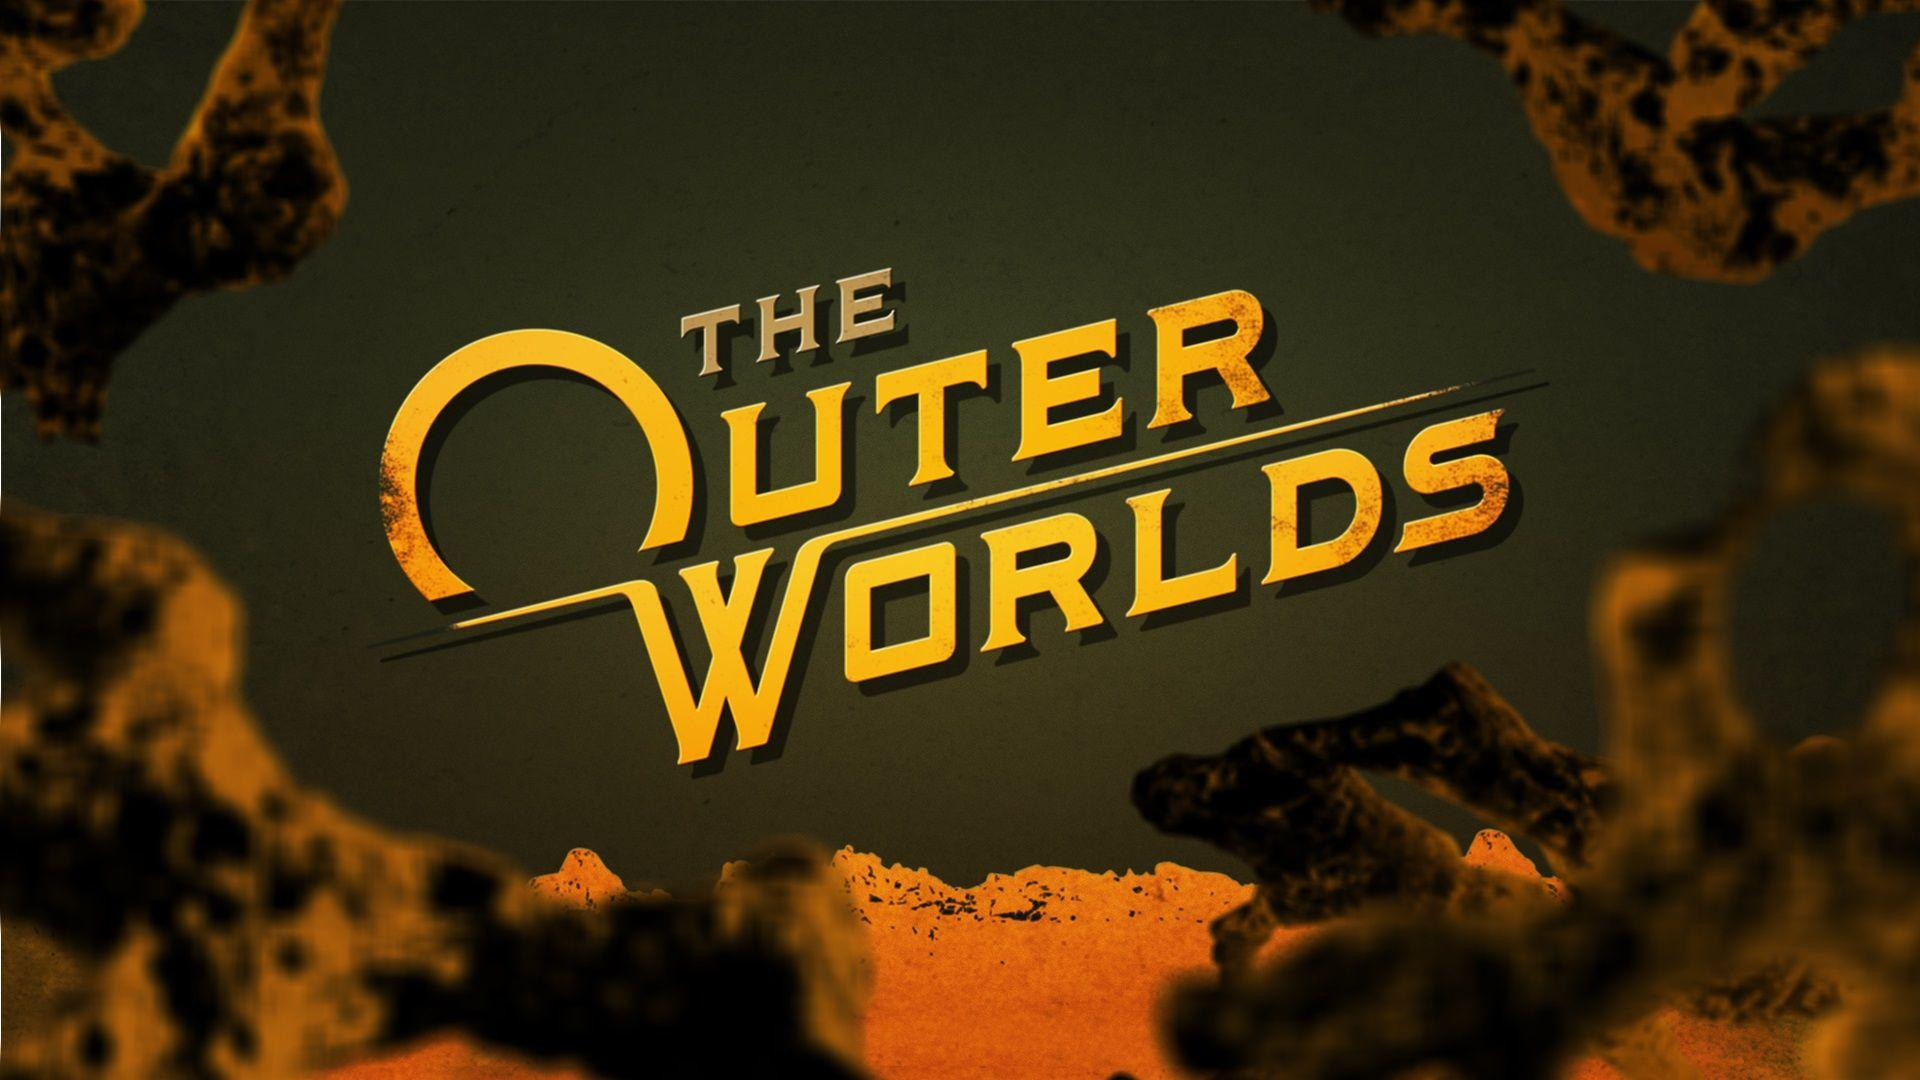 The Outer Worlds Wallpapers Wallpaper Cave